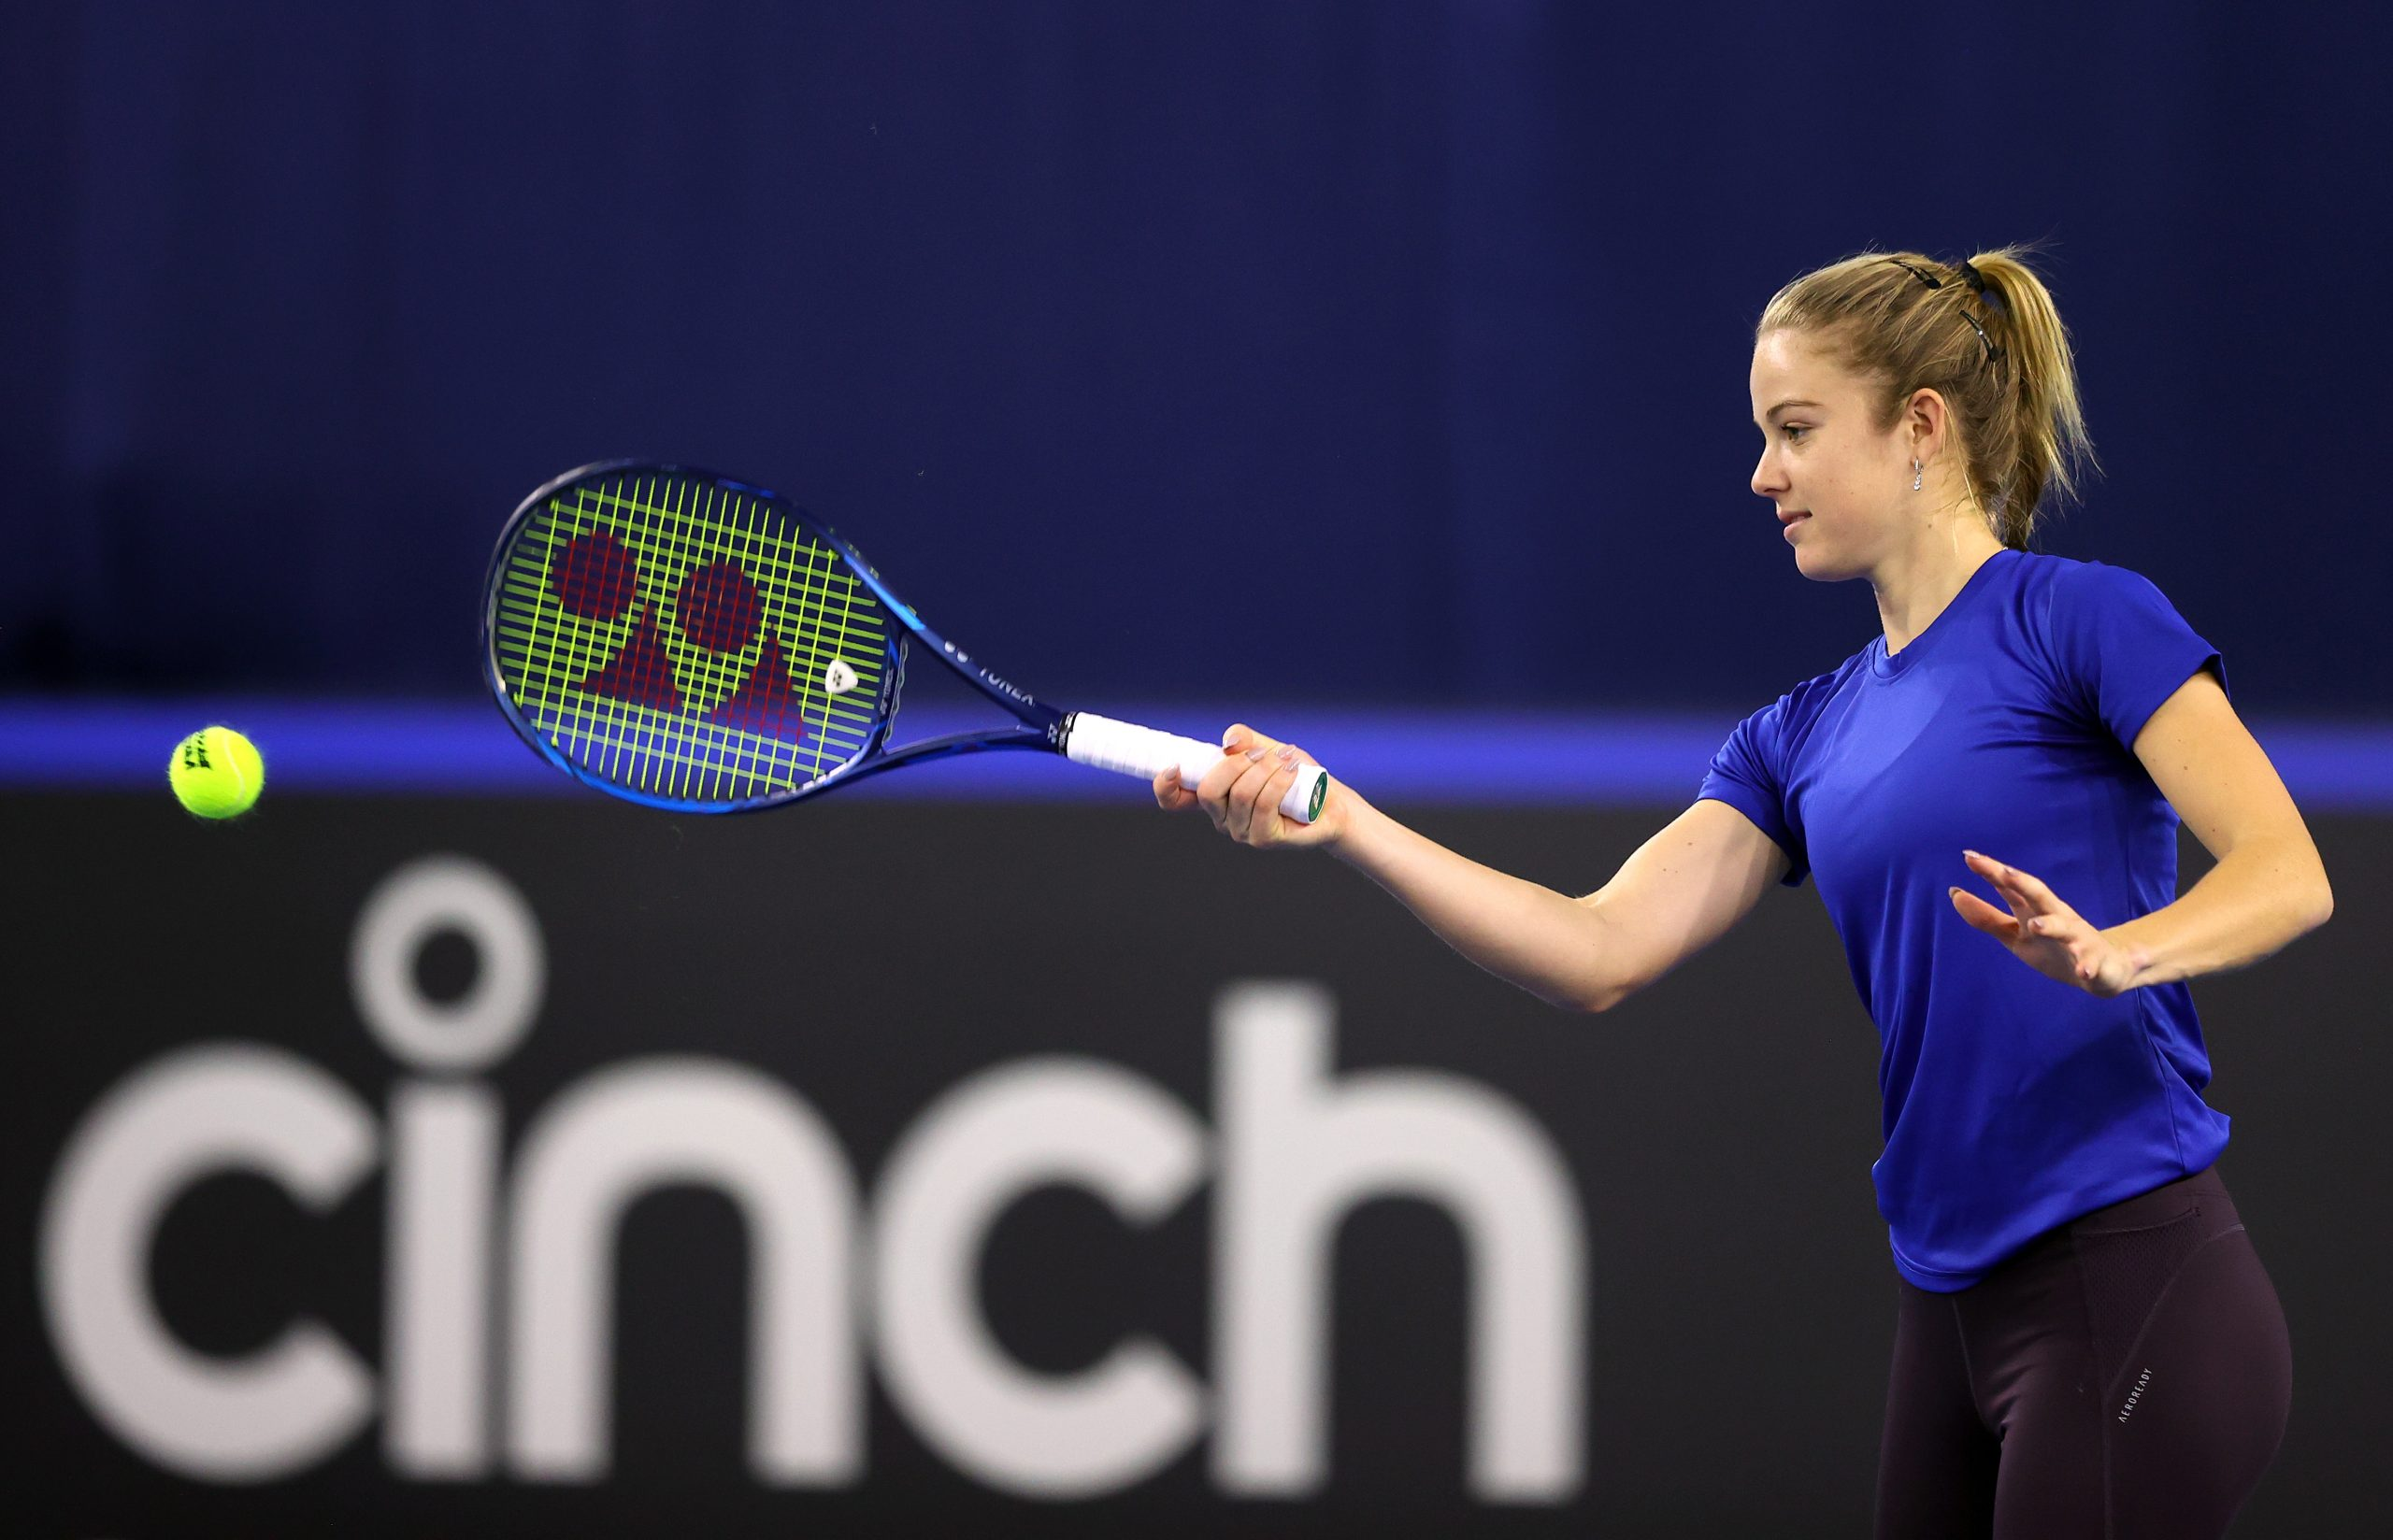 LONDON, ENGLAND - APRIL 15: Katie Swan of Great Britain plays a forehand shot during a preview day of the Billie Jean King Cup Play-Offs between Great Britain and Mexico at National Tennis Centre on April 15, 2021 in London, England. (Photo by Naomi Baker/Getty Images for LTA)